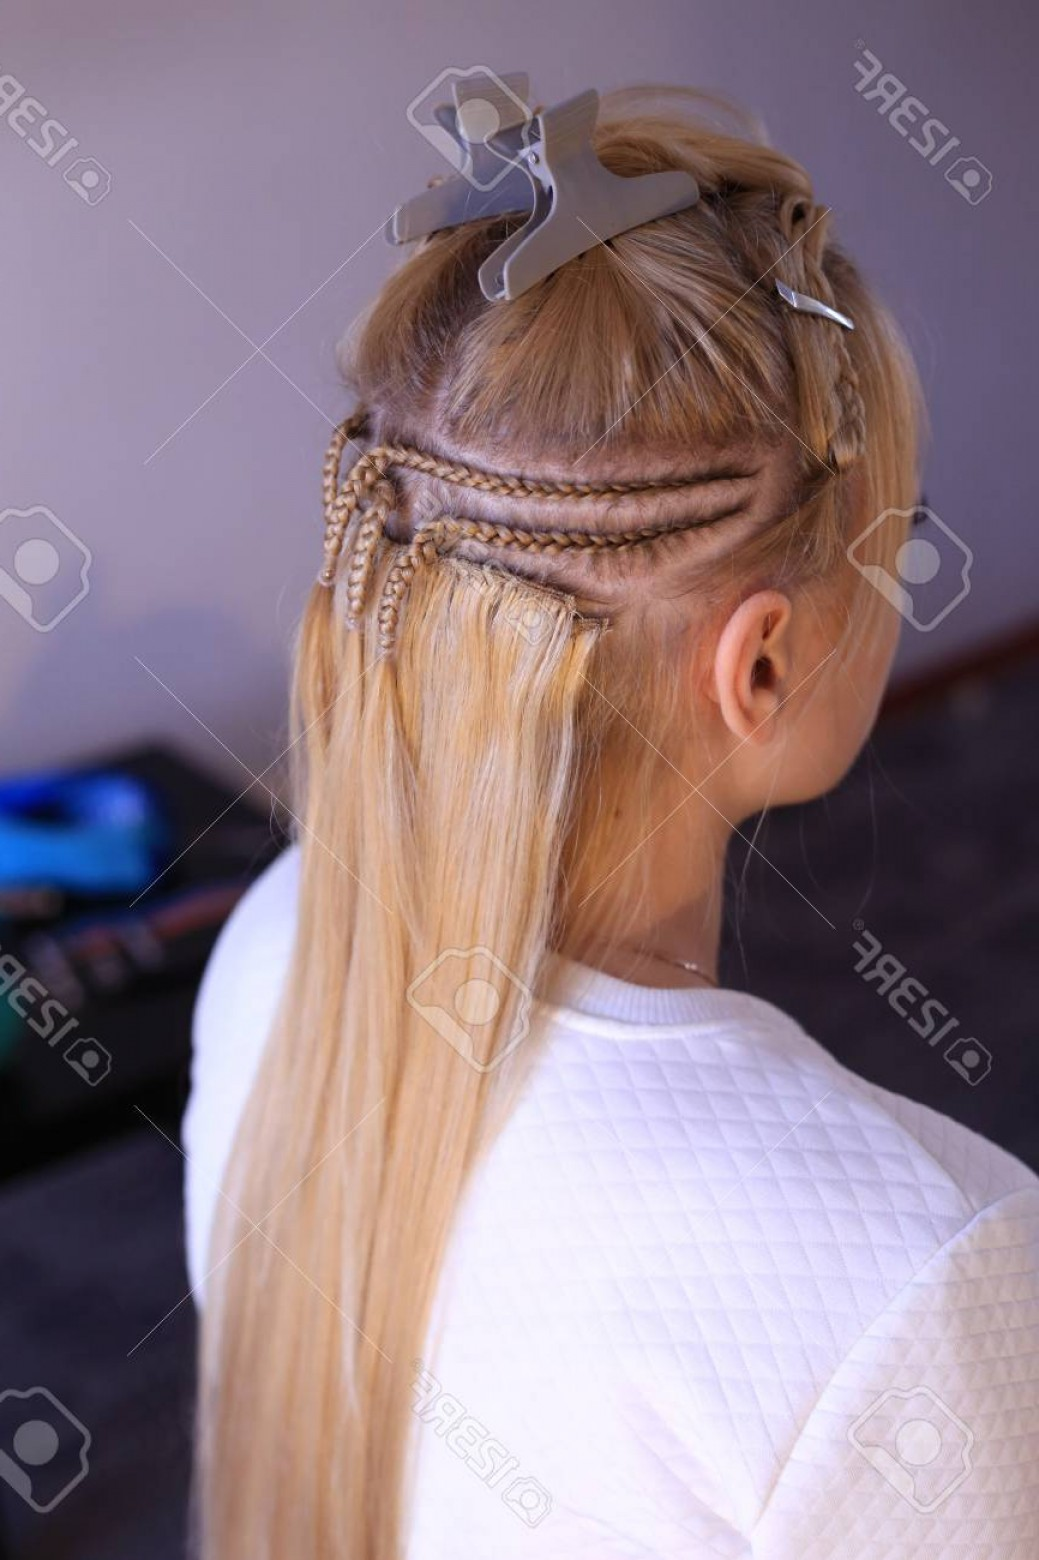 Extencion Braids Vector: Photohair Extension With The Help Of Sewing To The Braids